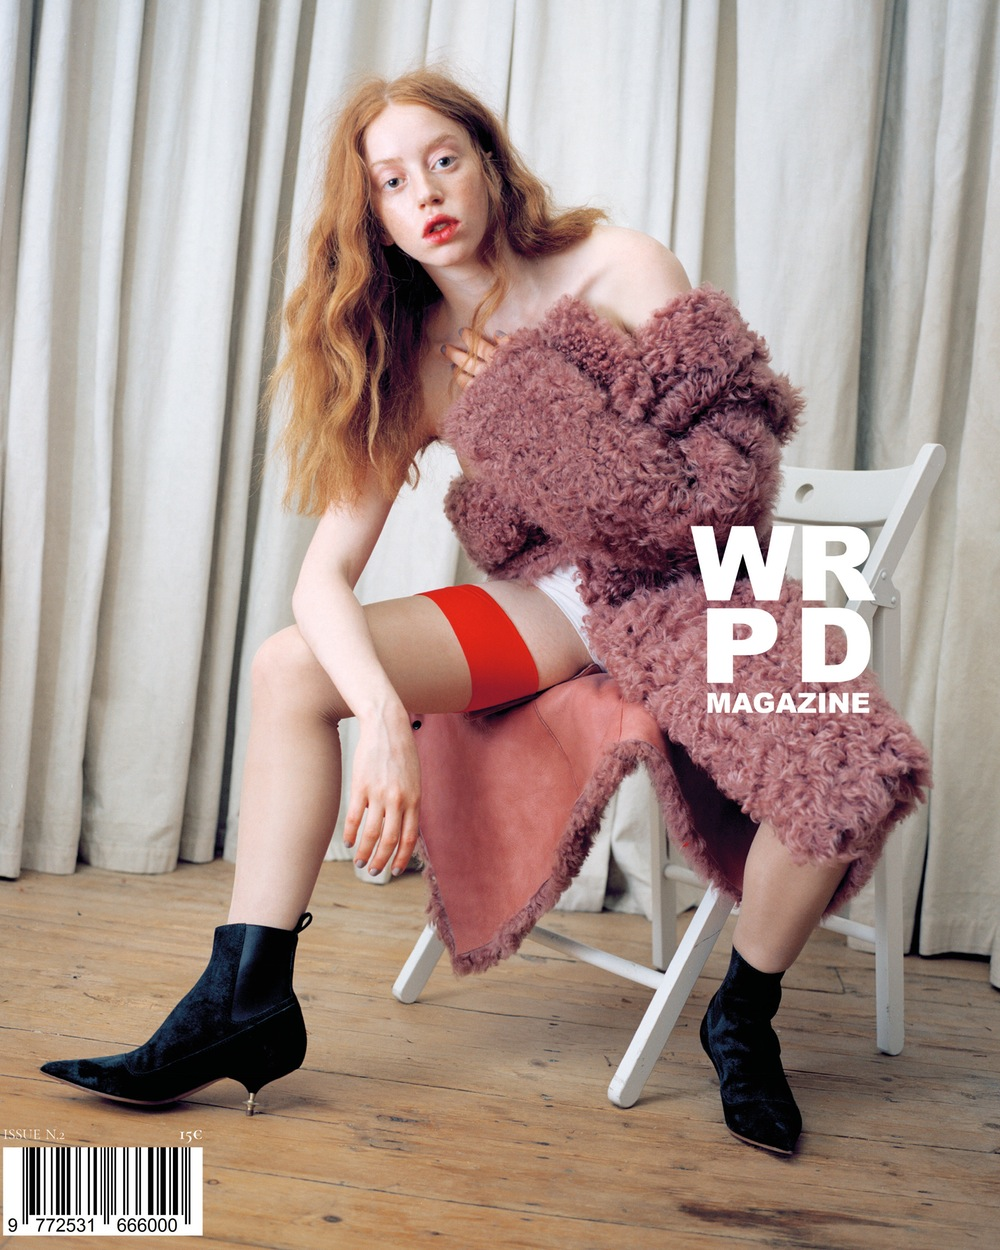 WRPD Magazine Cover